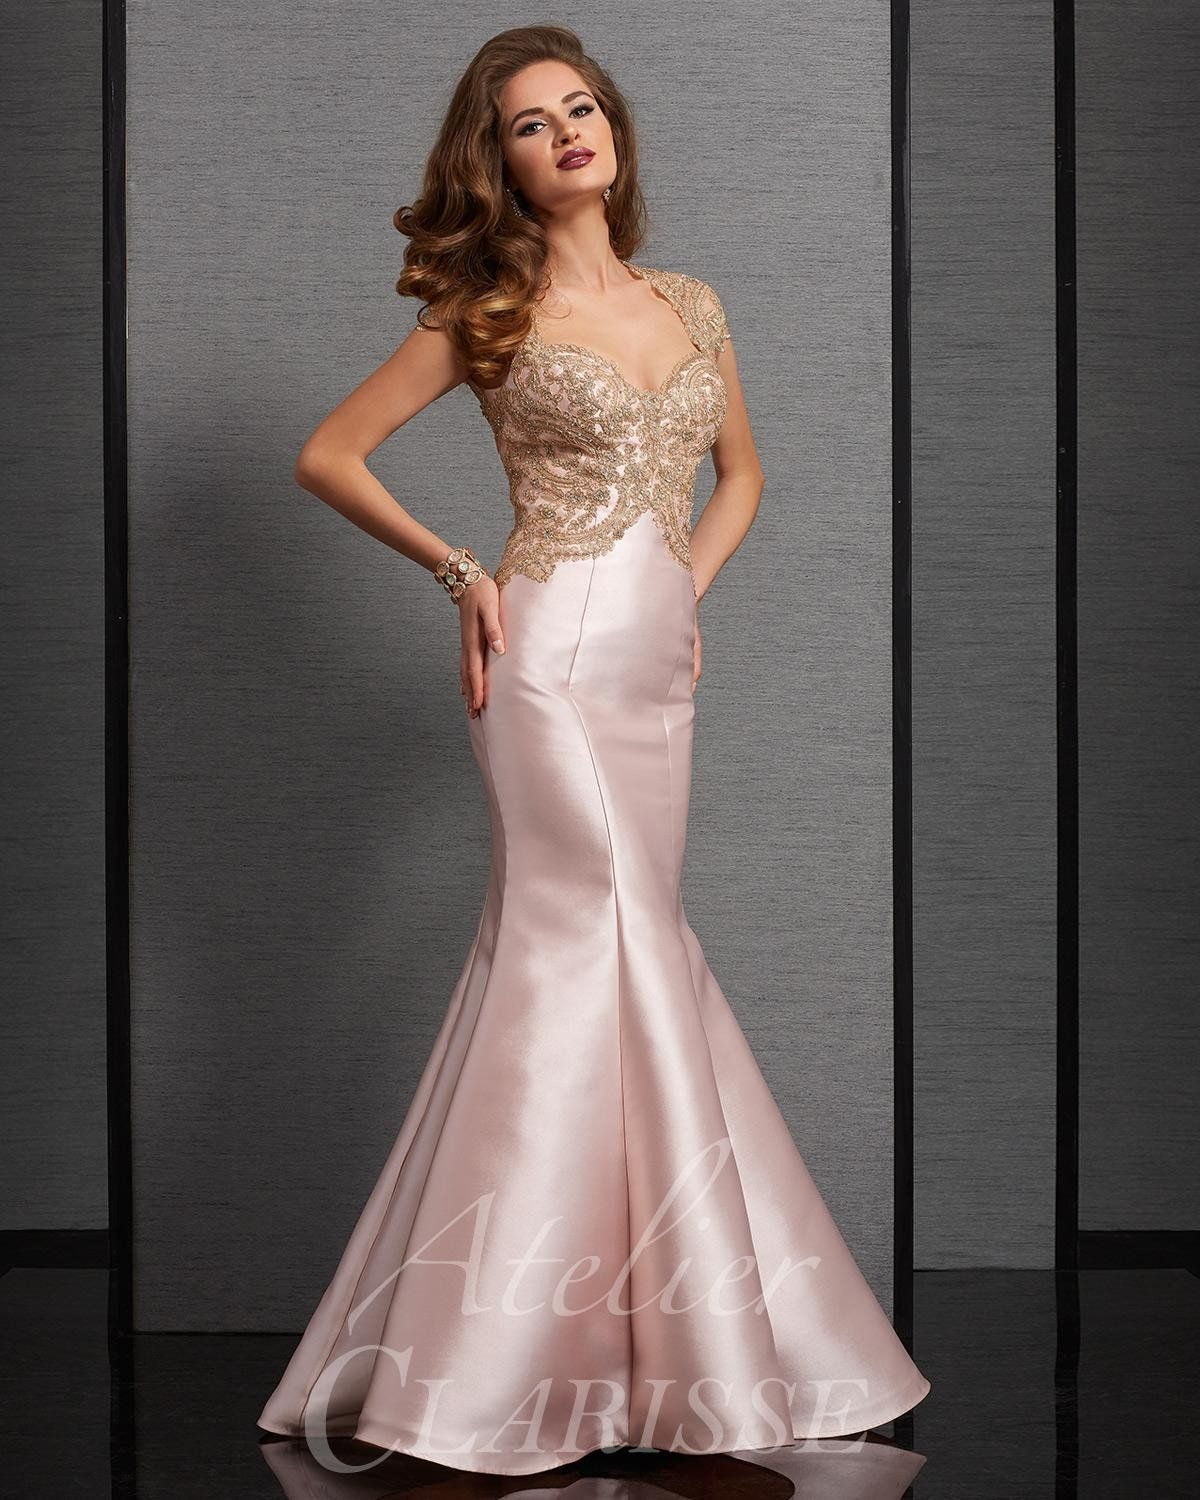 Atelier Gold Blush Evening Gown Mermaid Prom Dresses Mermaid Evening Gown Mermaid Formal Gowns